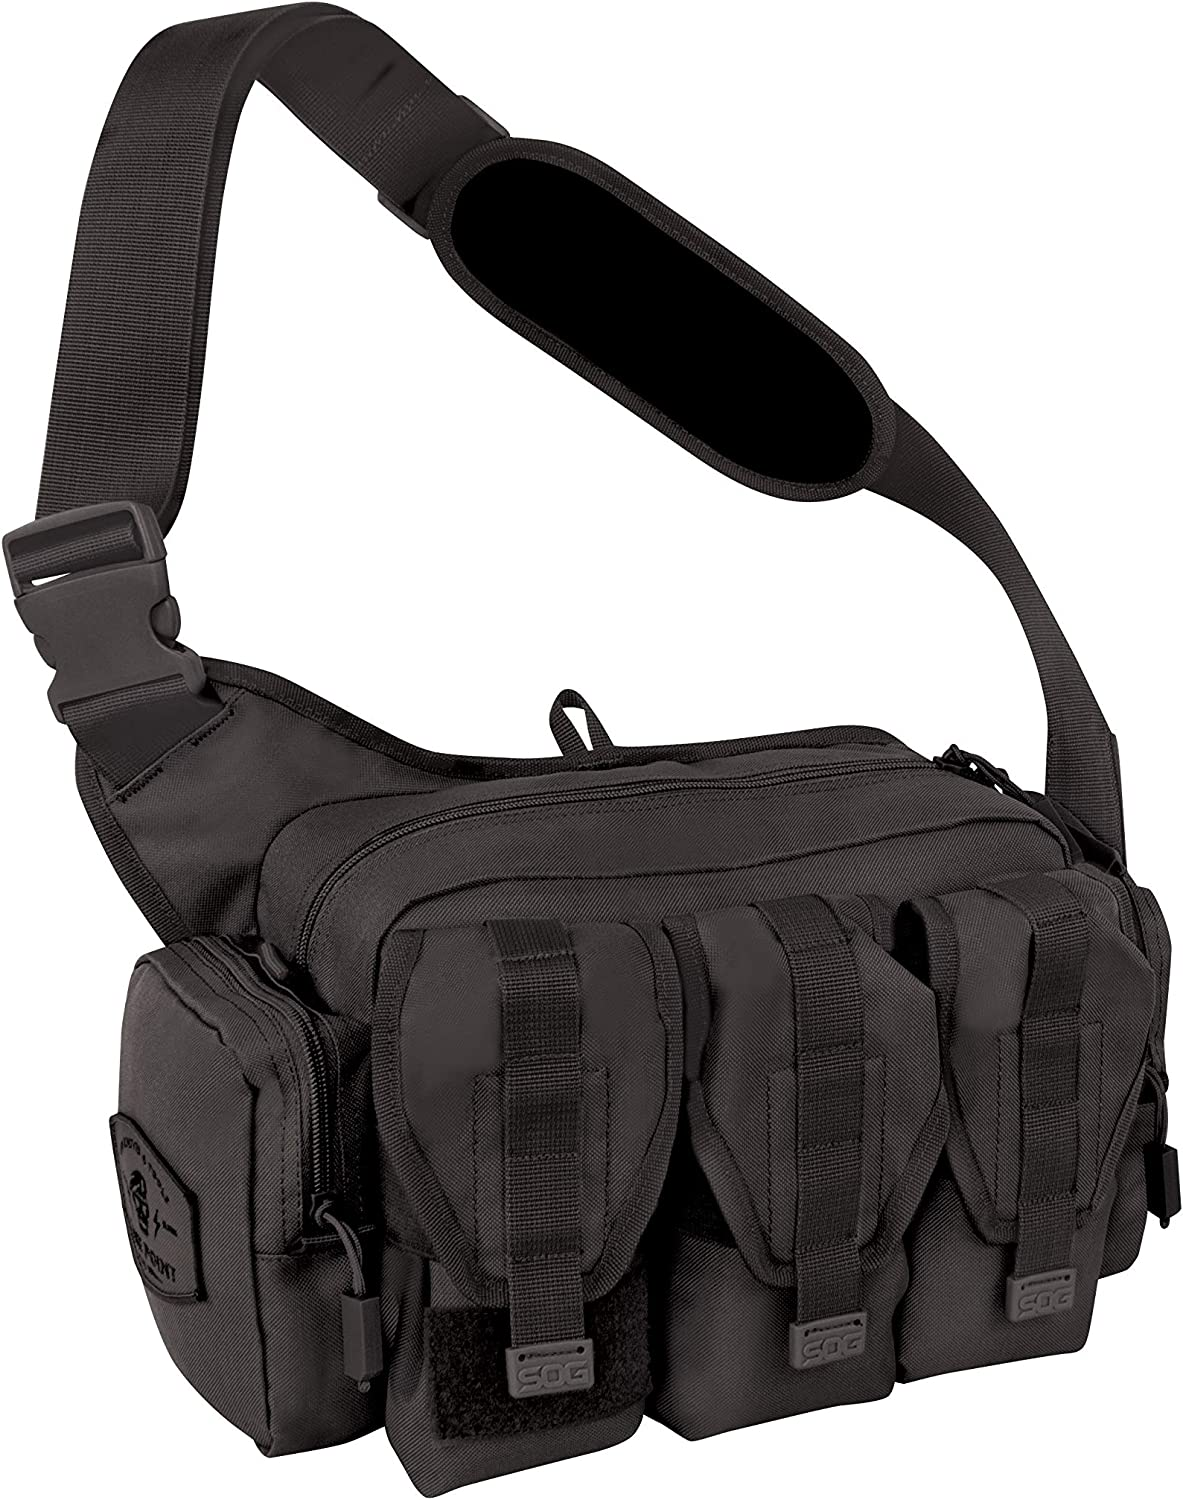 This is a picture of a black tactical range padded shoulder bag with three front pockets in velcro-type closure.